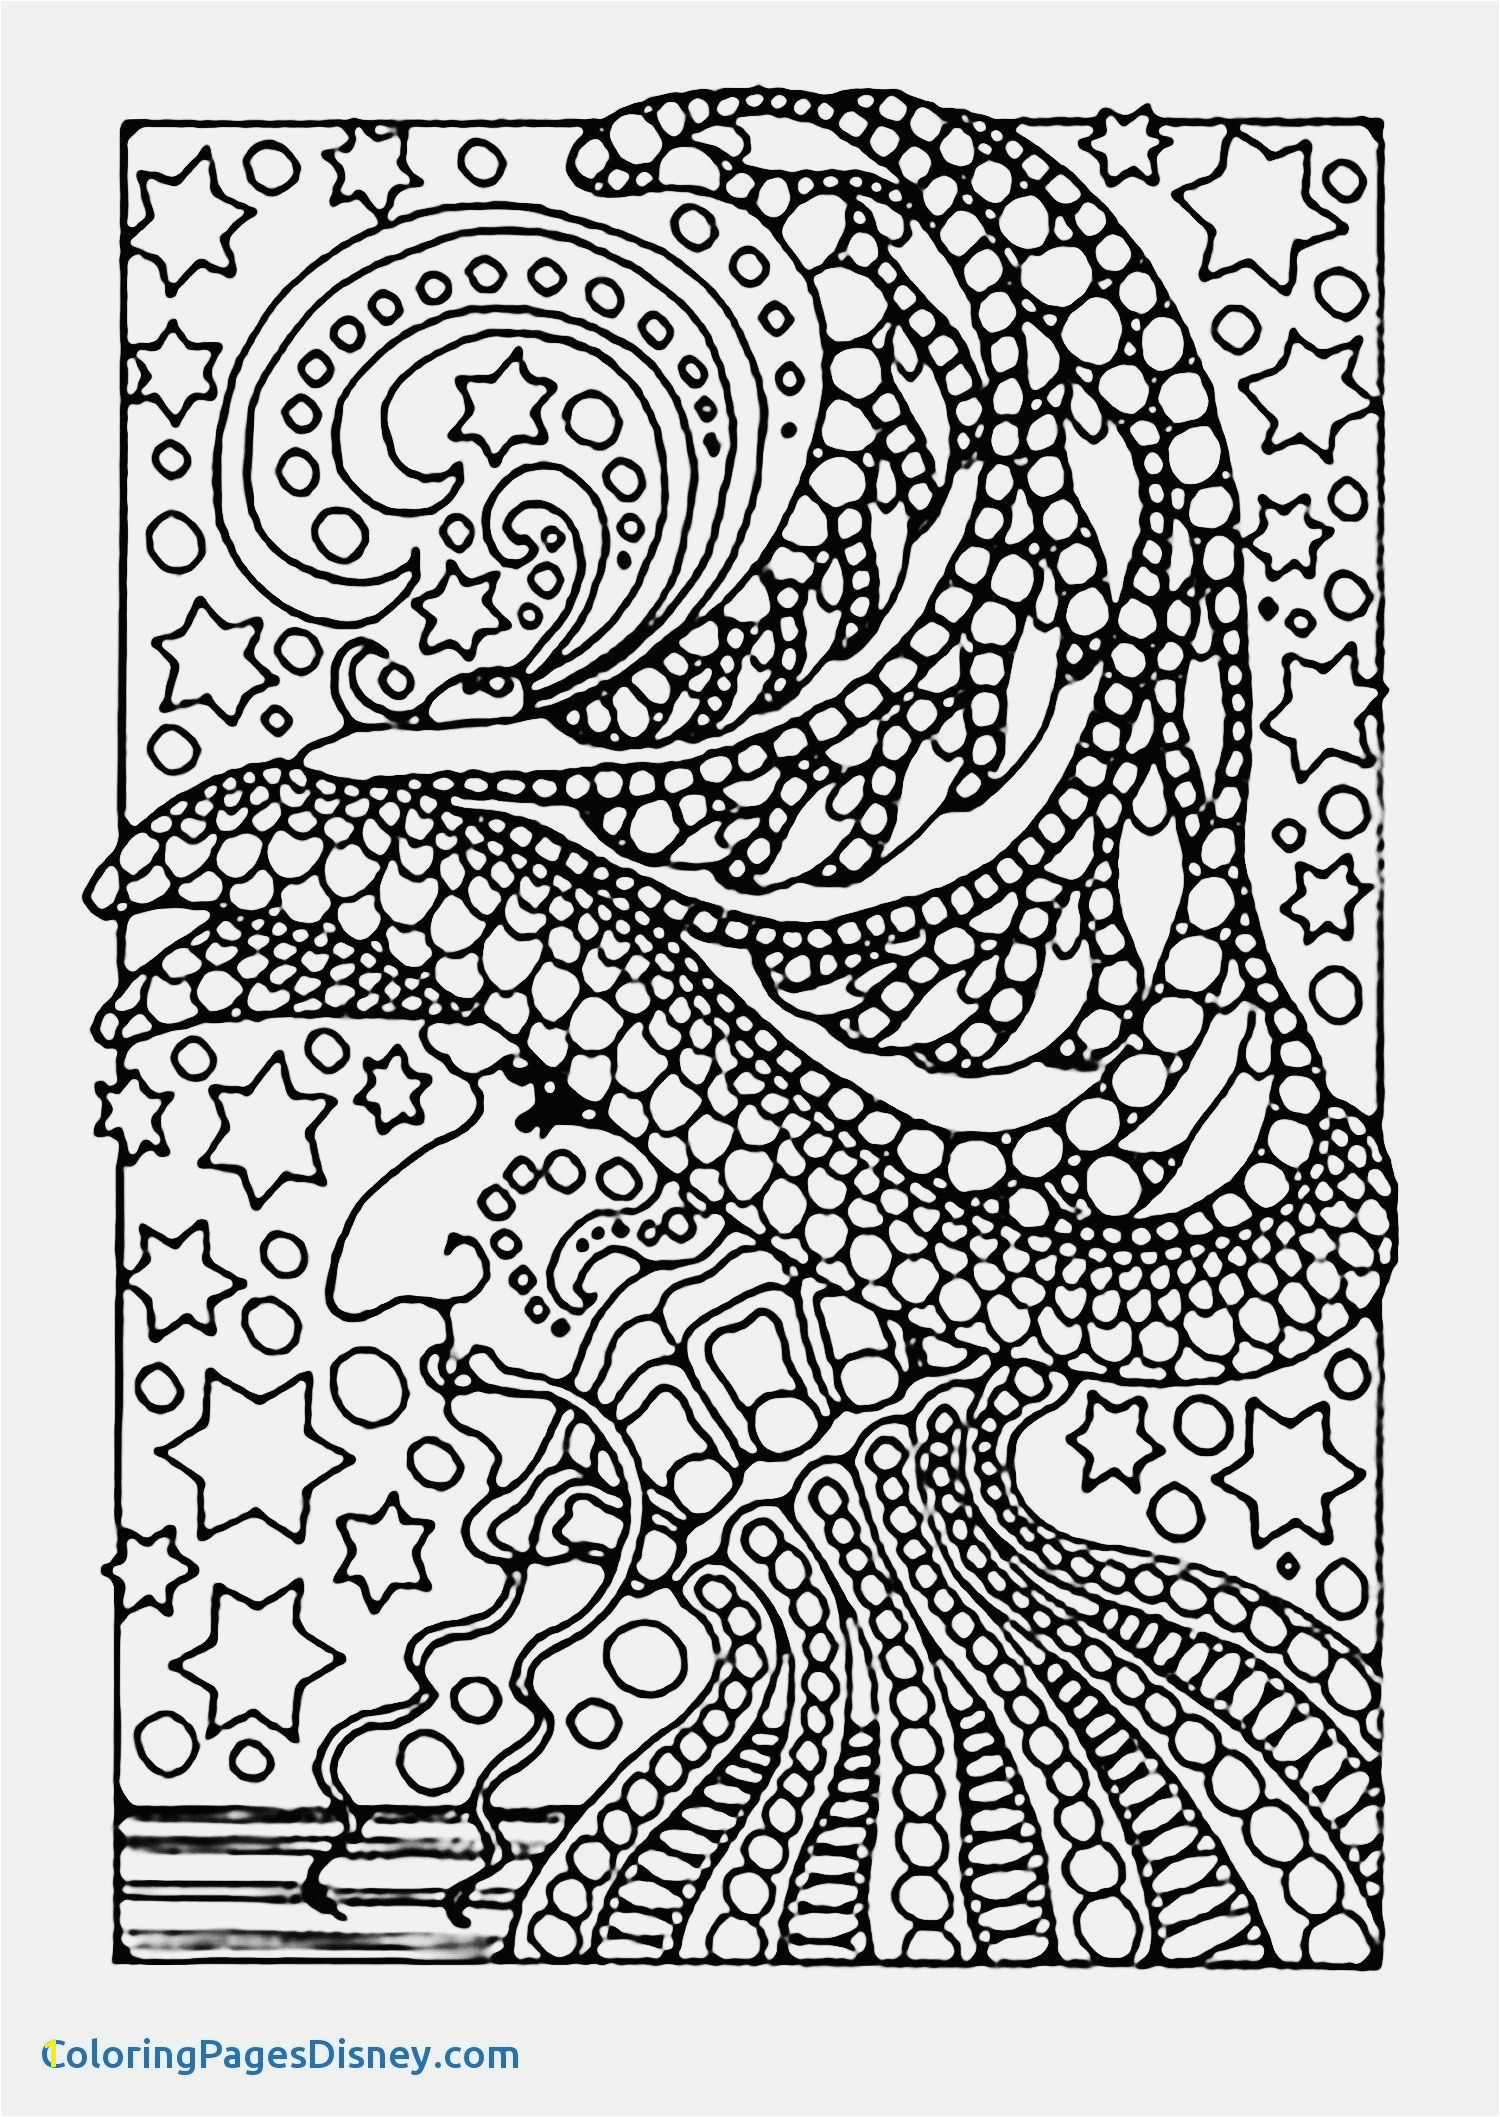 Pferde Ausmalbilder Bildergalerie & Bilder Zum Ausmalen Domain Coloring Inspirational Winter Coloring Pages Free New Adult